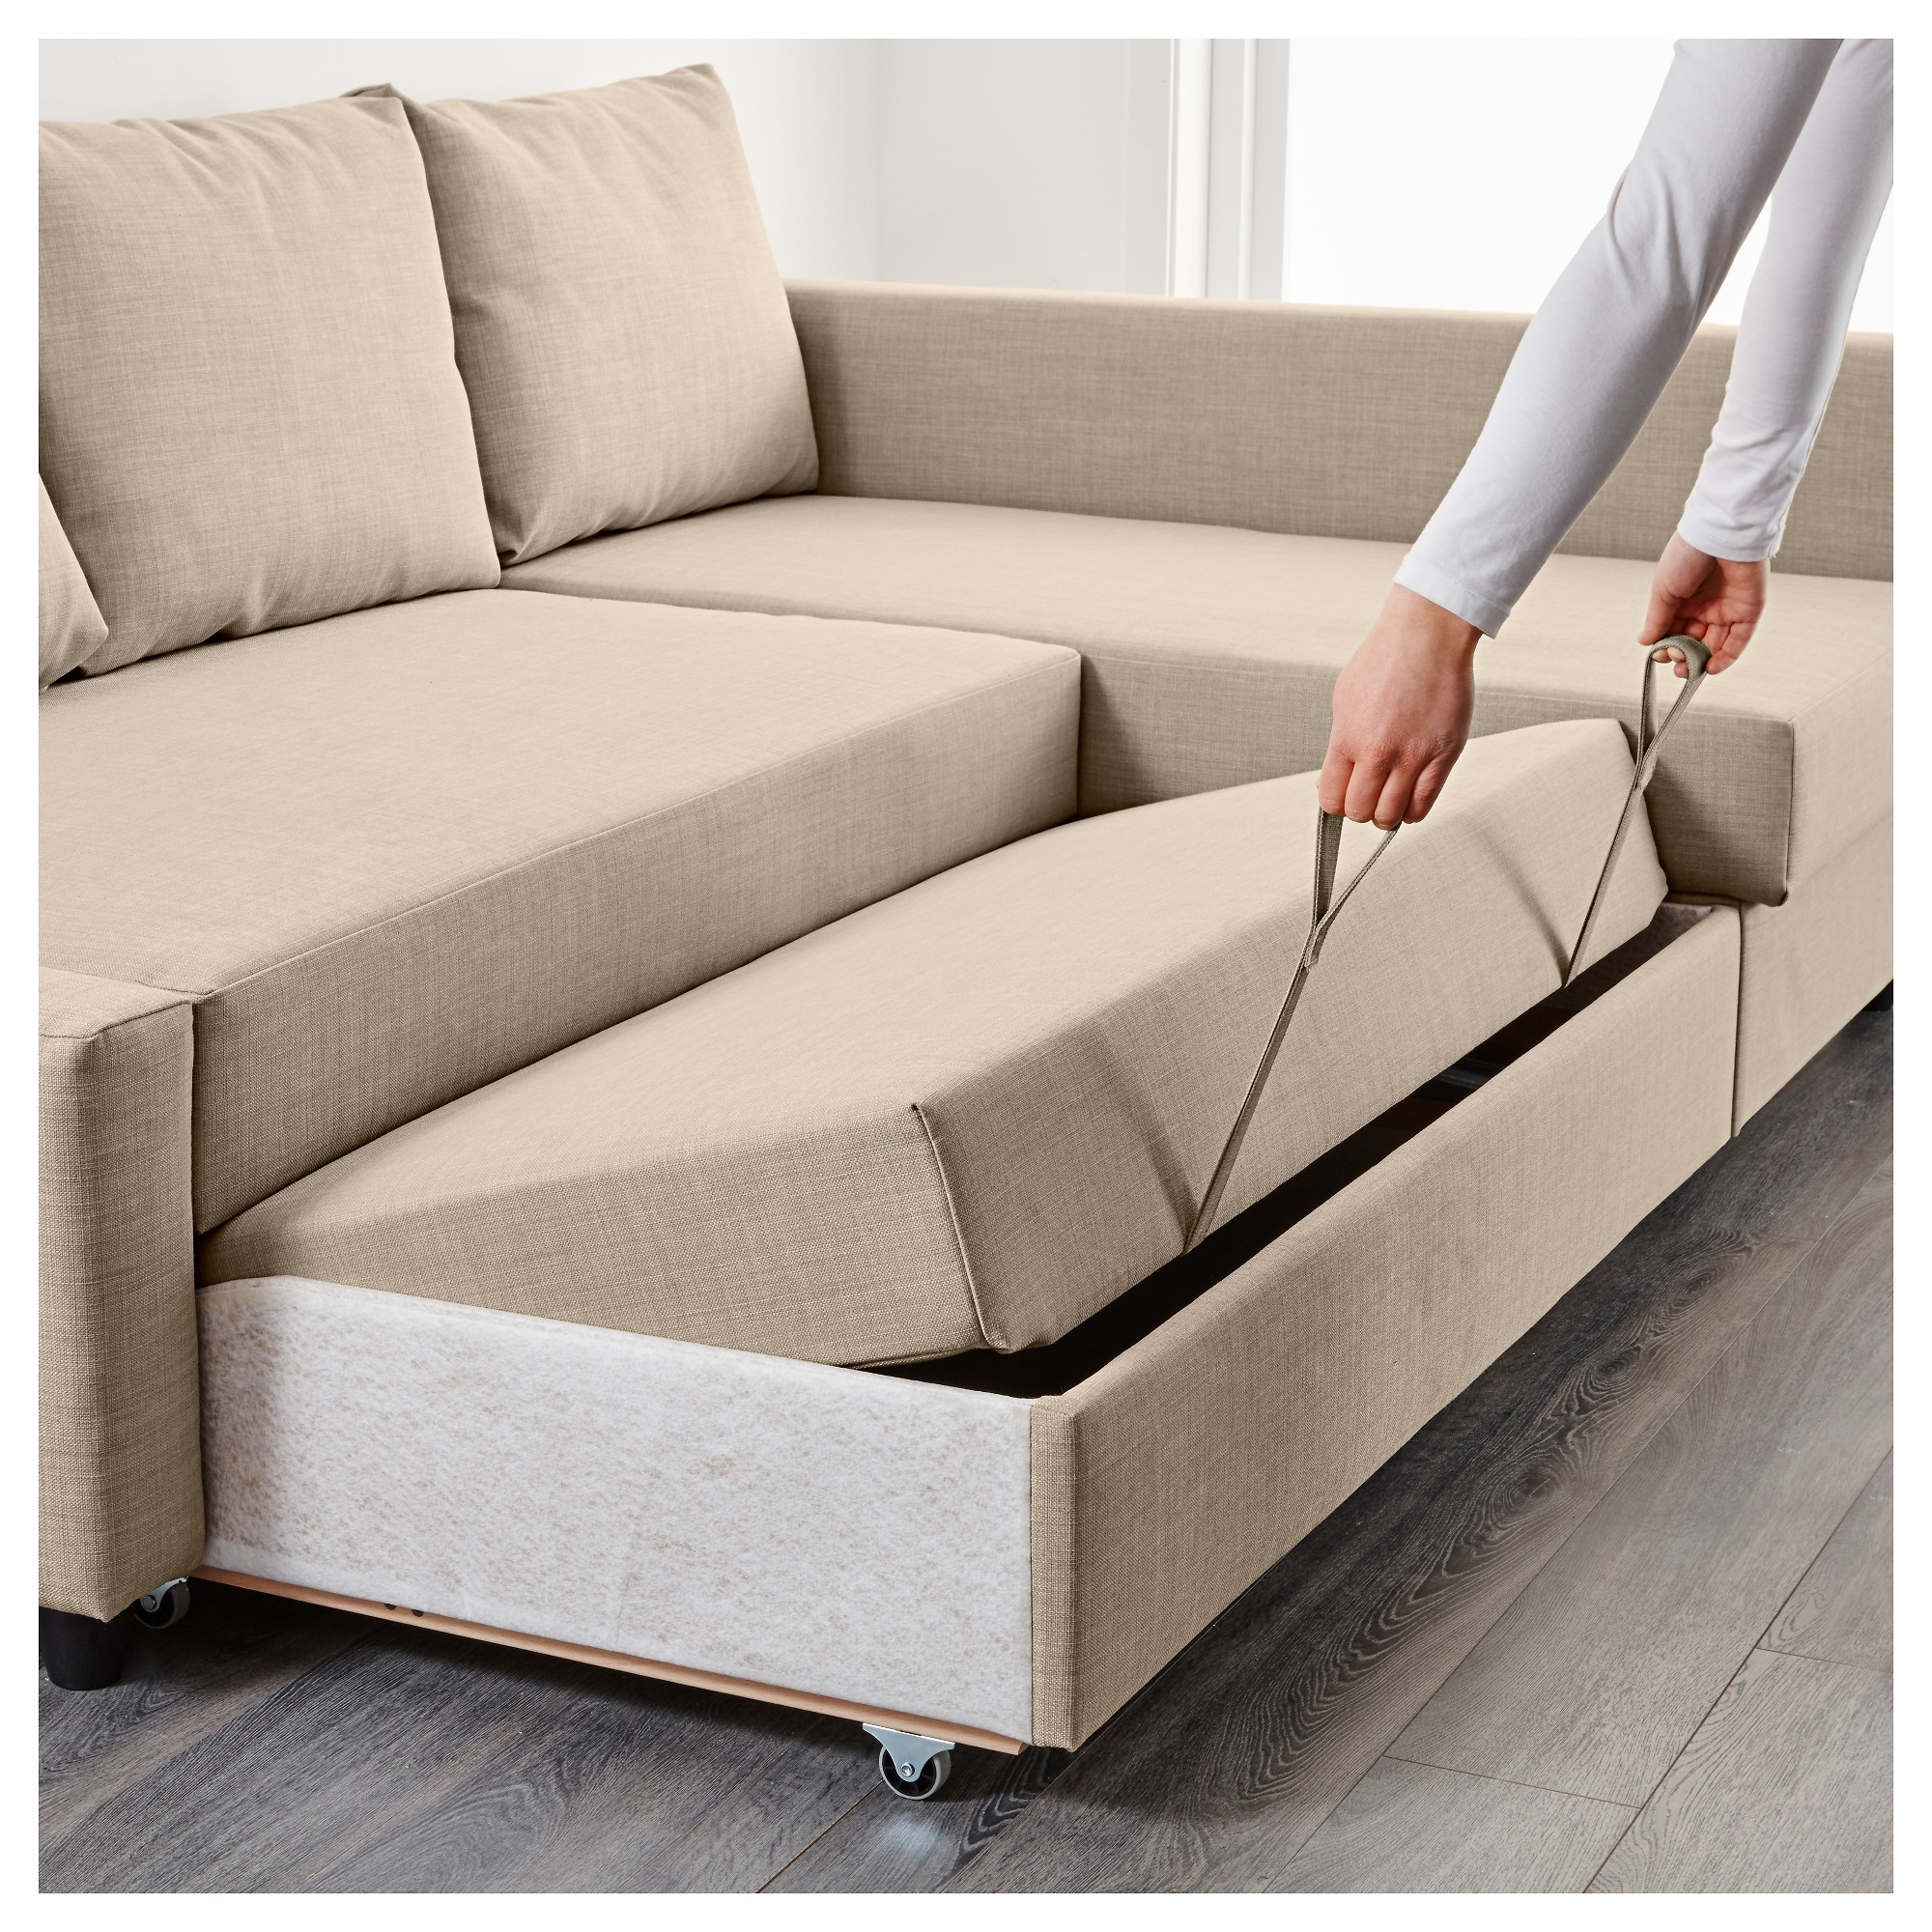 Friheten Corner Sofa Bed With Storage Skiftebo Beige – Ikea With Well Known Ikea Corner Sofas With Storage (View 2 of 20)